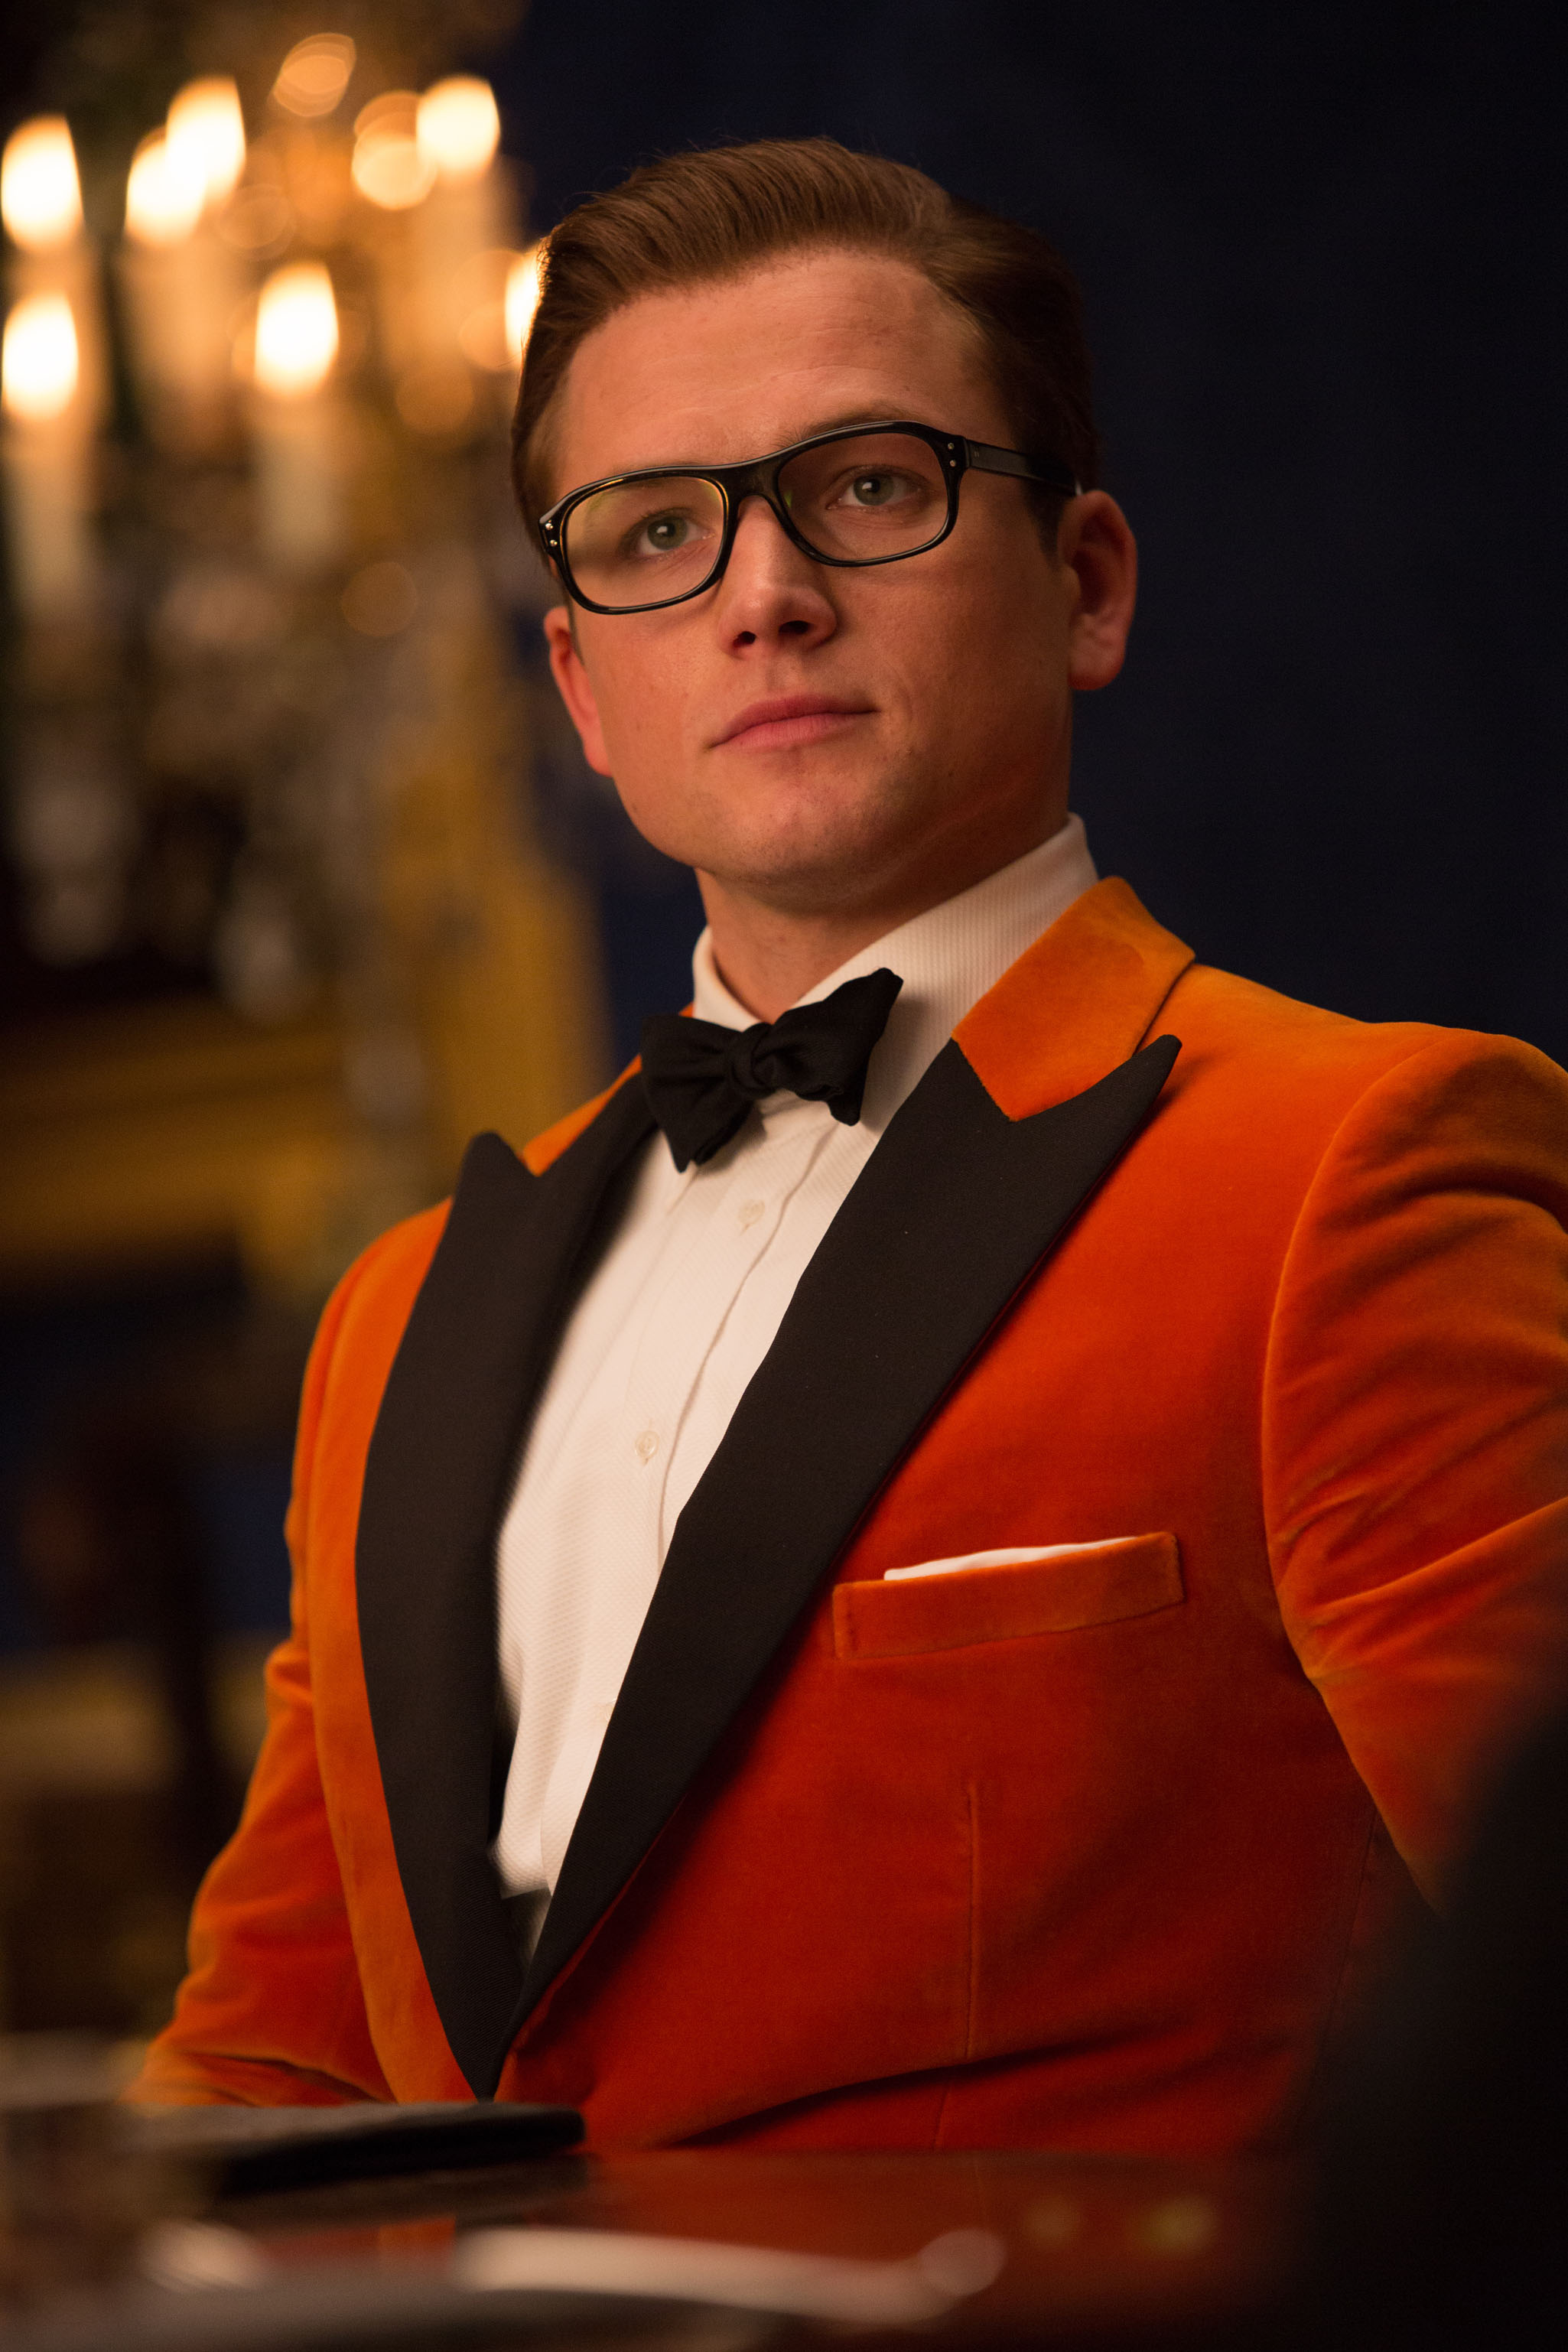 "DF-24830 - Taron Egerton stars in Twentieth Century Fox's ""Kingsman: The Golden Circle,"" also starring Colin Firth, Julianne Moore, Halle Berry, Mark Strong, Elton John, Channing Tatum and Jeff Bridges. Photo Credit: Giles Keyte."